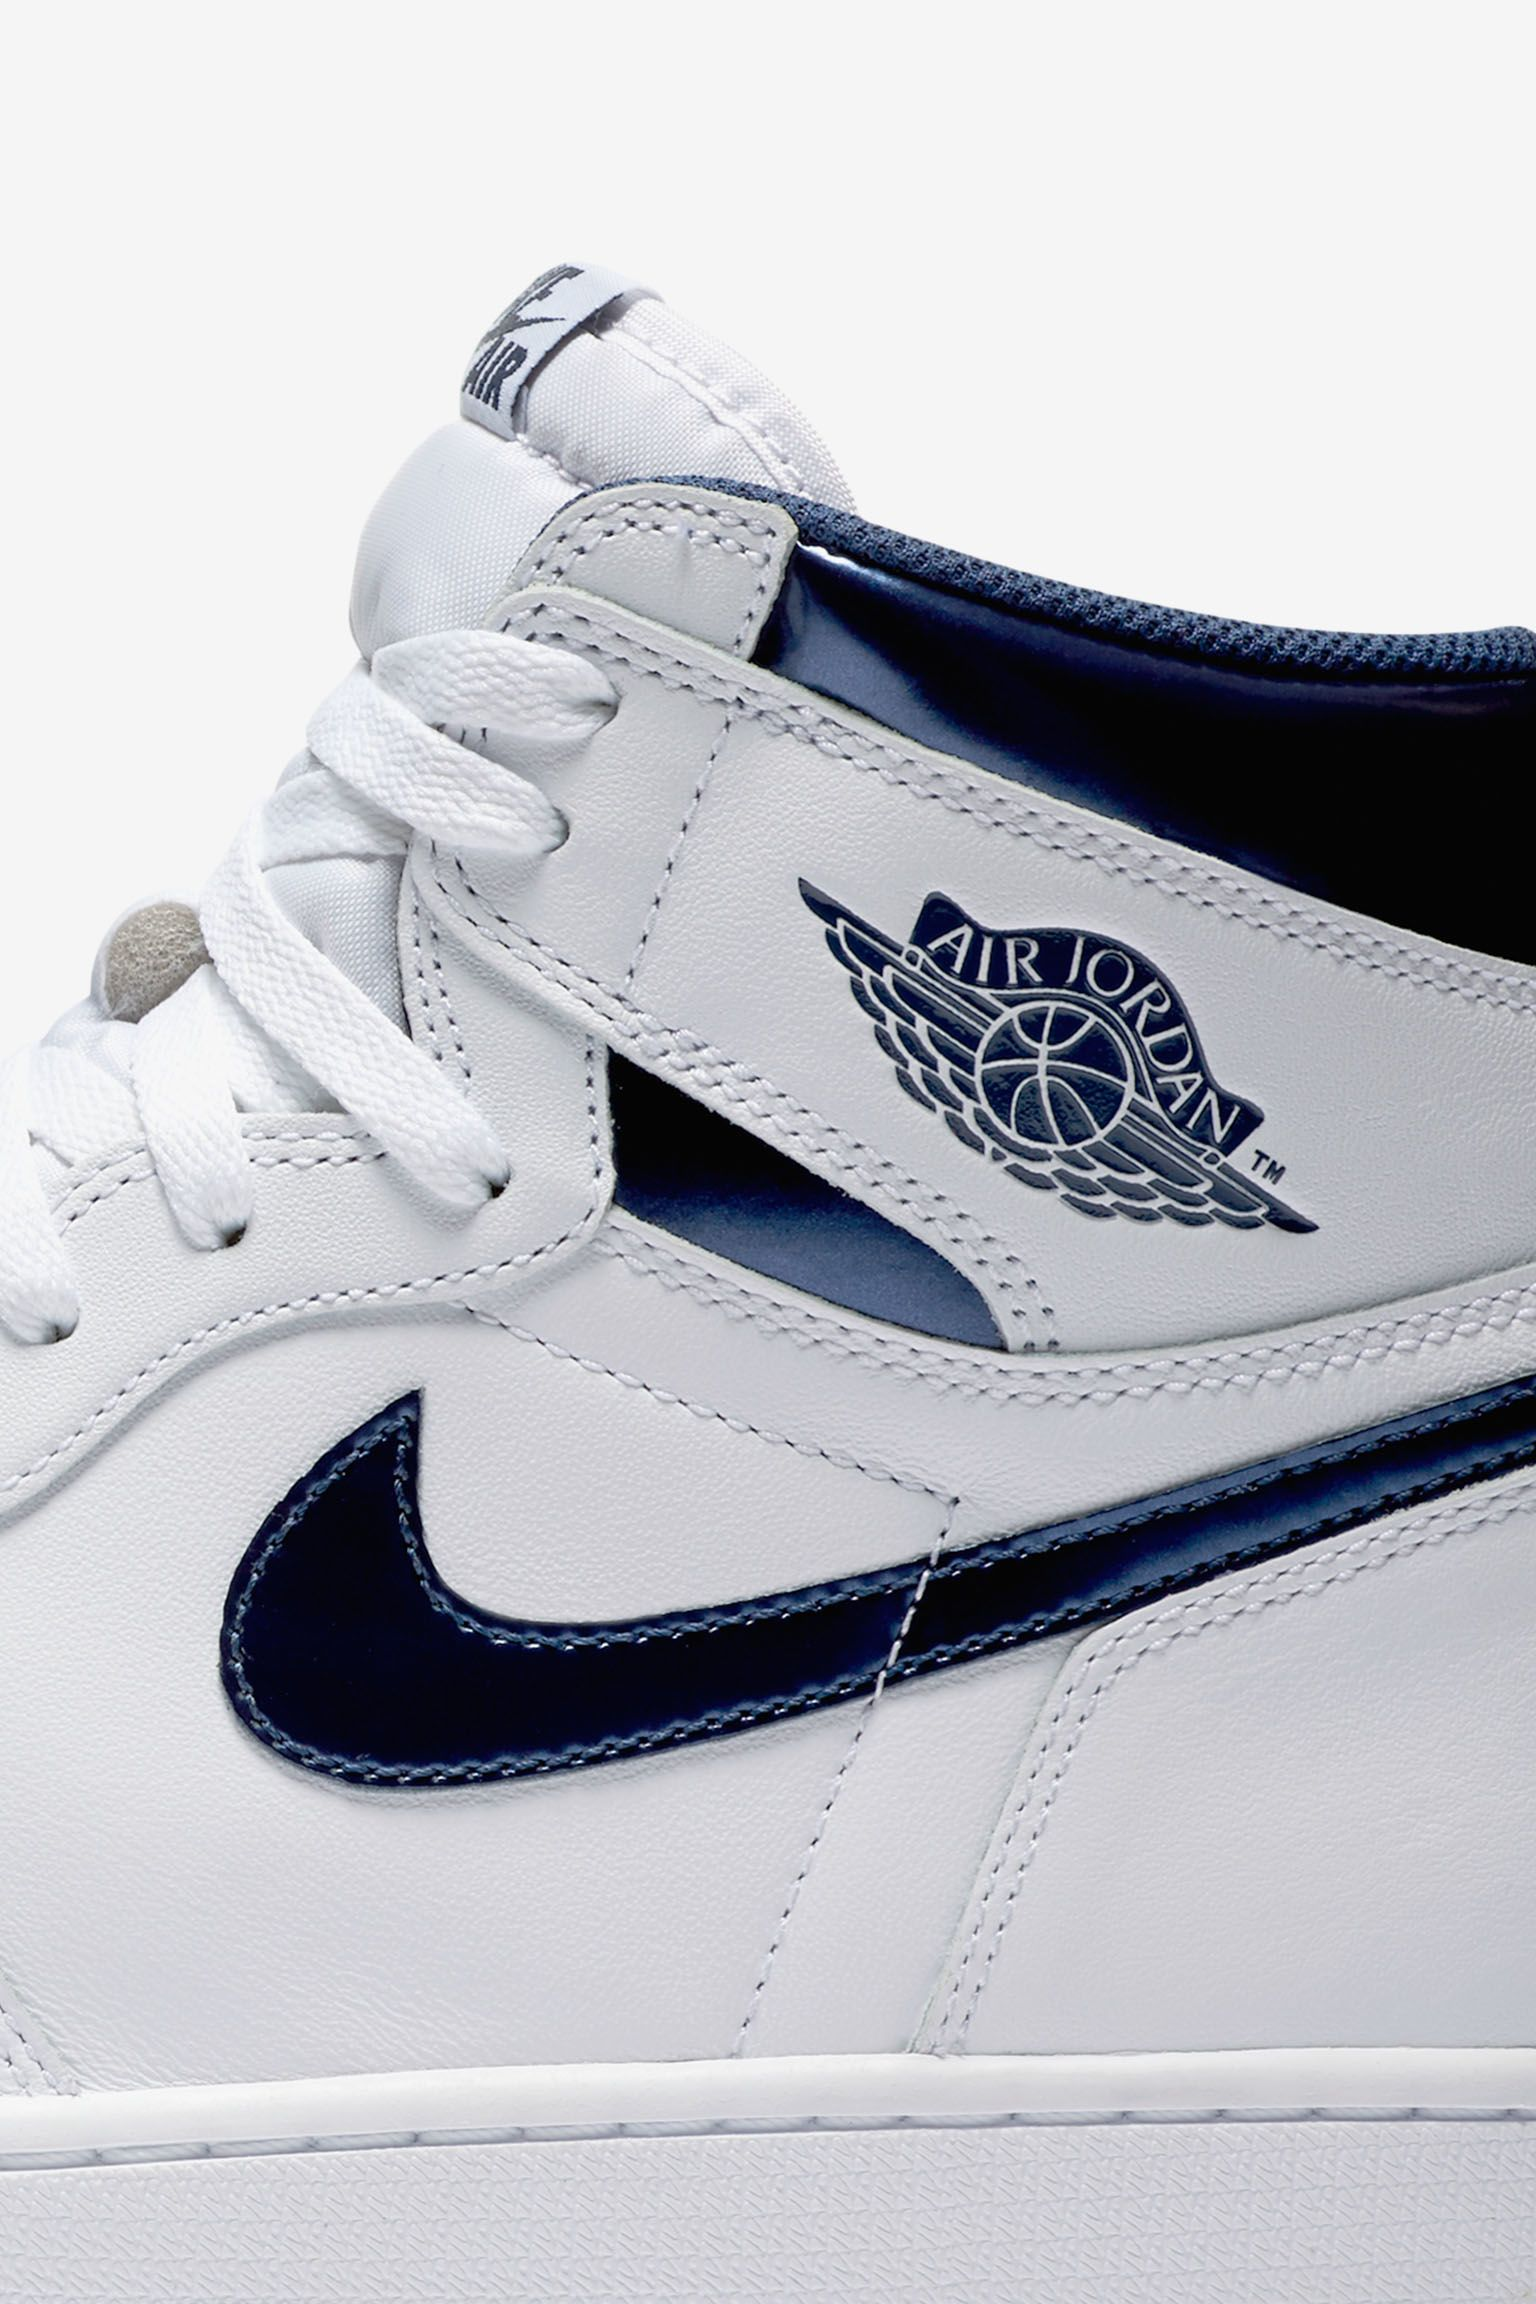 Air Jordan 1 Retro 'Metallic Navy' Release Date